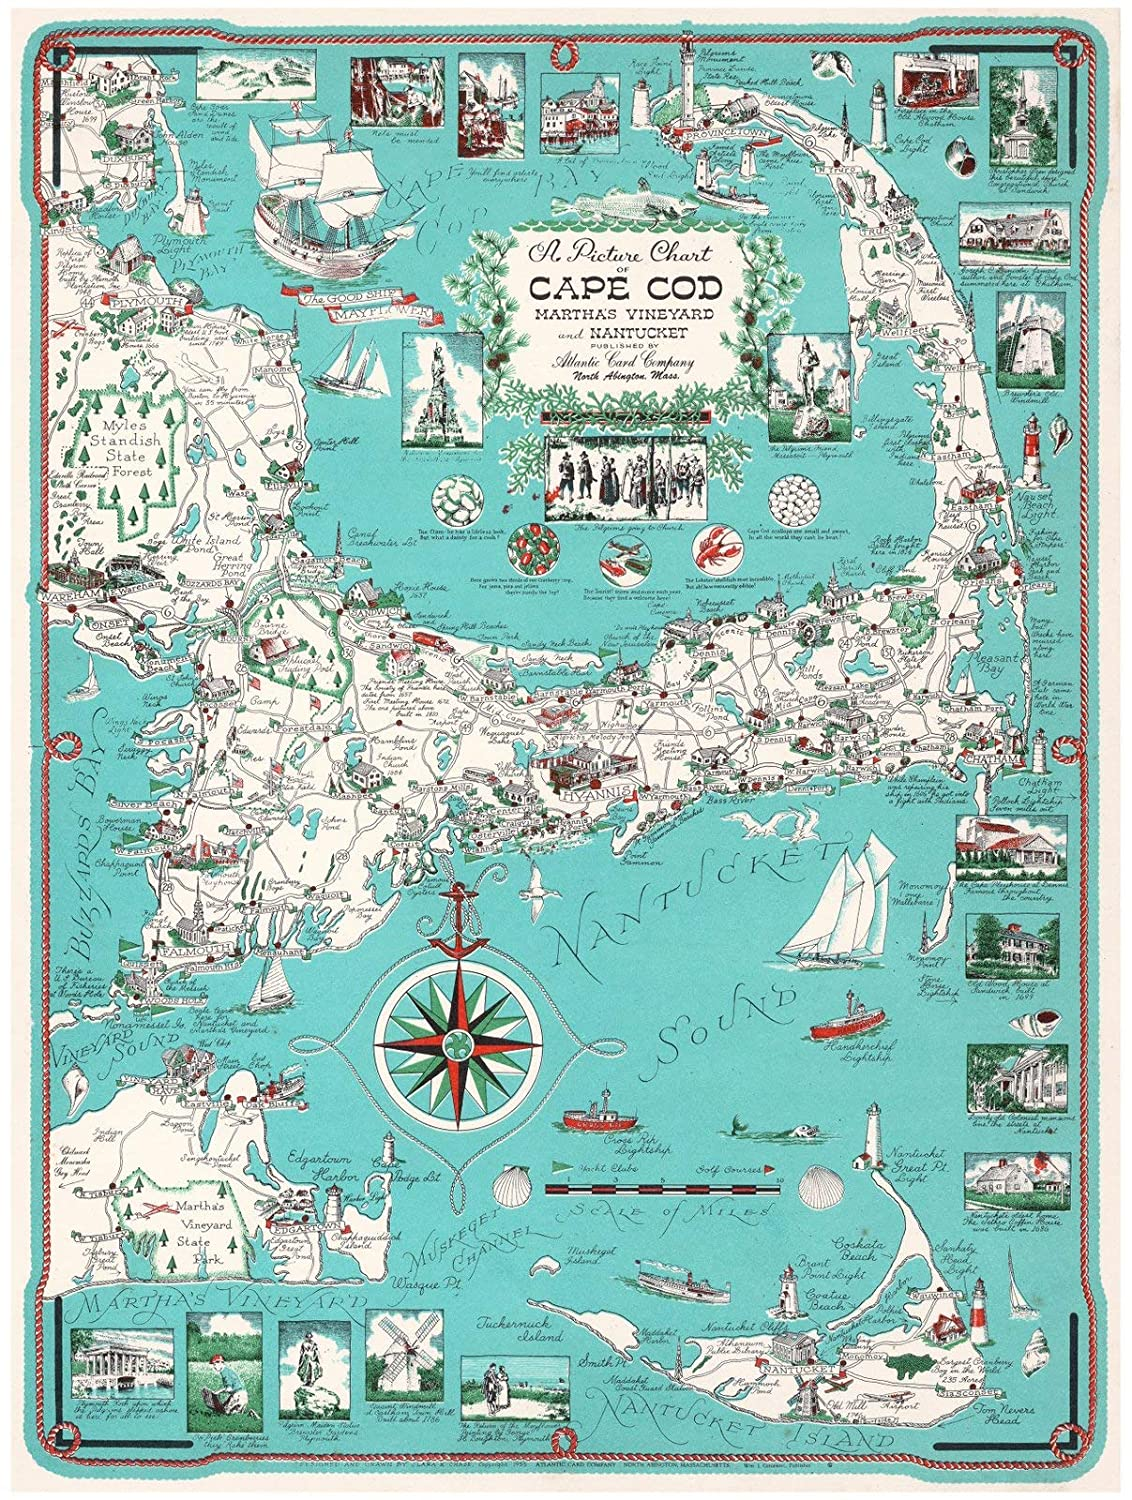 graphic relating to Printable Map of Cape Cod titled Historical Pictoric Typical Map Map of Cape Cod (with Kennedy Material) 1960 Ernest Dudley Chase 18 x 24 Good Artwork Print